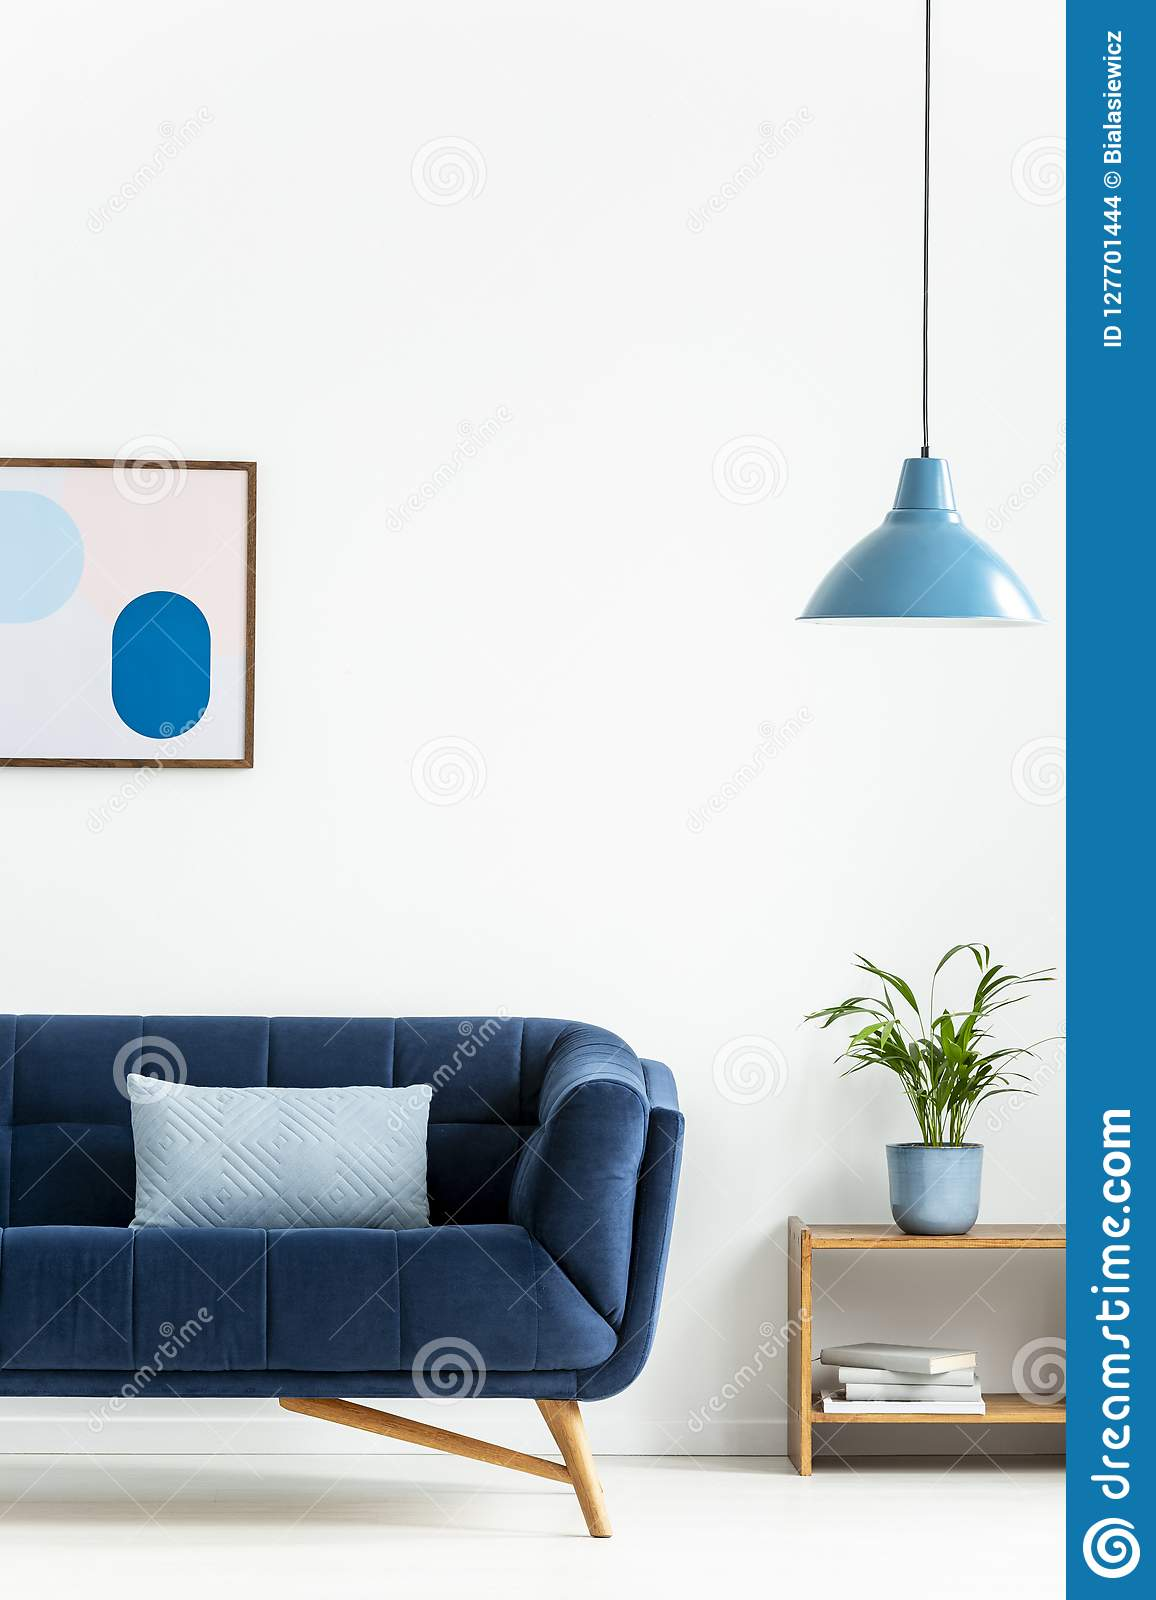 Retro Bowl Pendant Light And A Baby Blue Cushion On A Dark Elegant Sofa In A Simple Living Room Interior With White Walls Real P Stock Photo Image Of Side Pillow